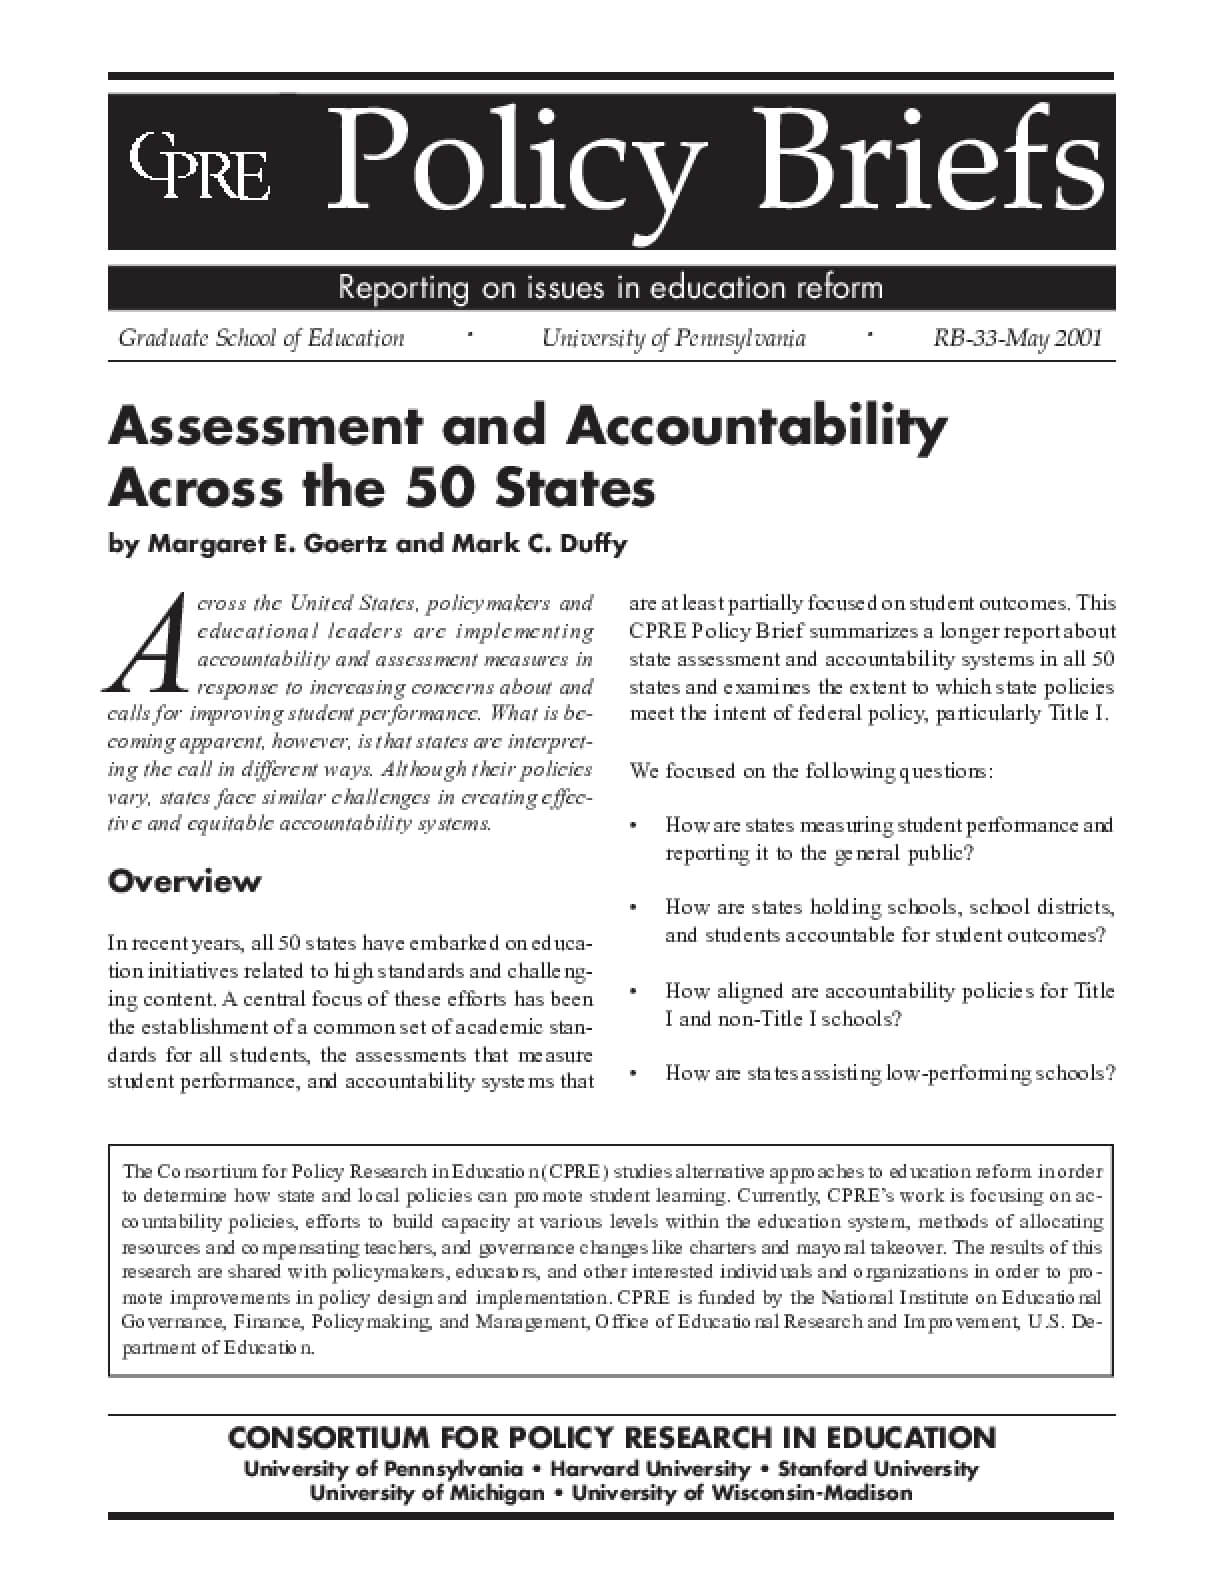 Assessment and AccountabilityAcross the 50 States